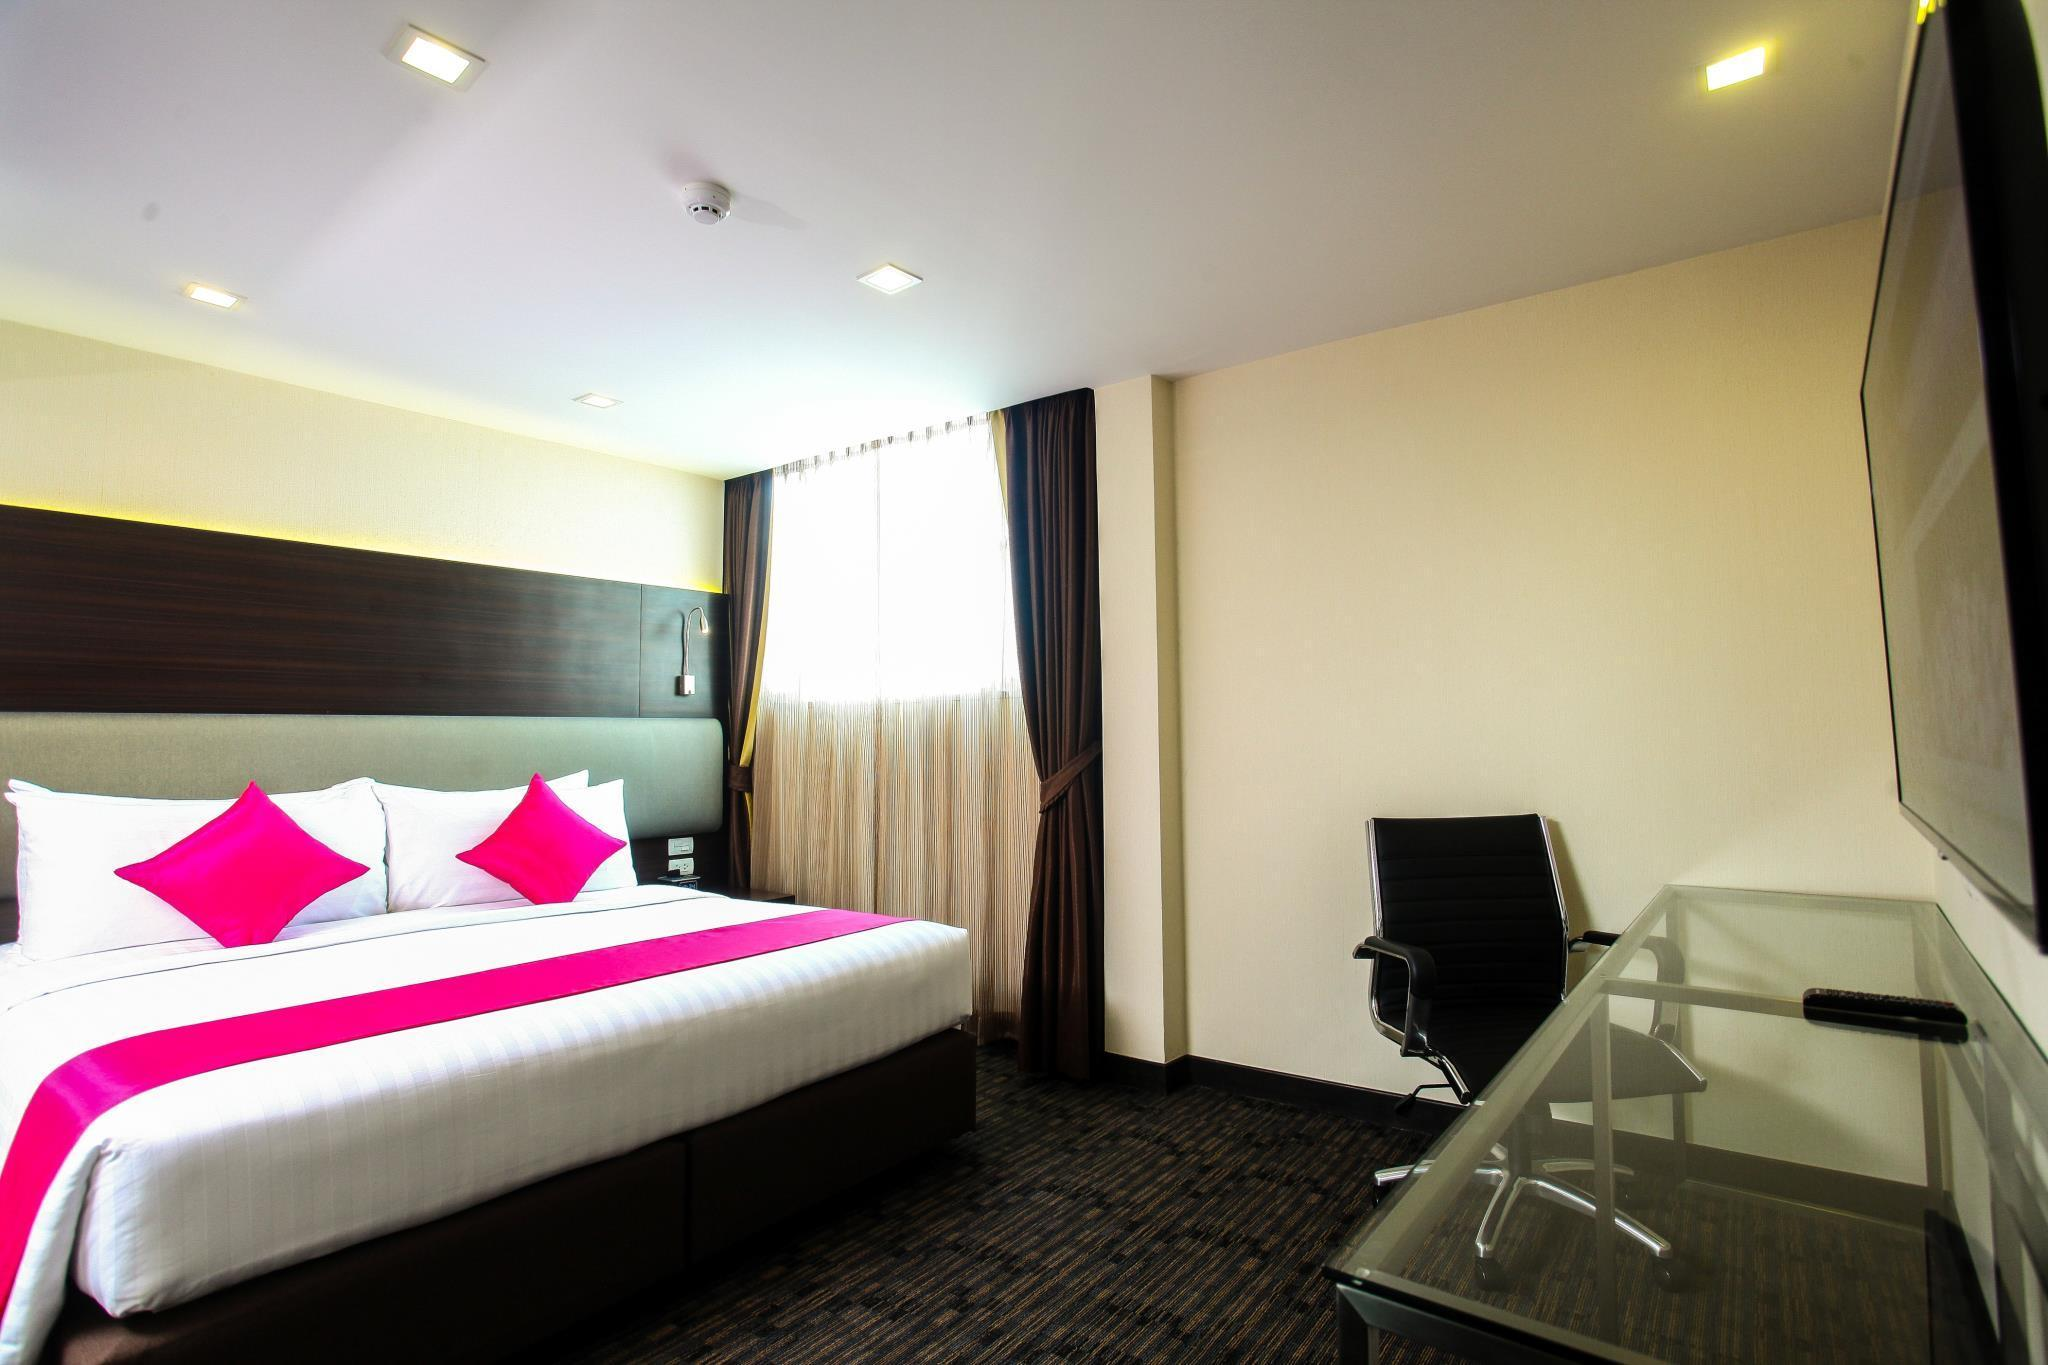 Suite Apartemen (Apartment Suite)